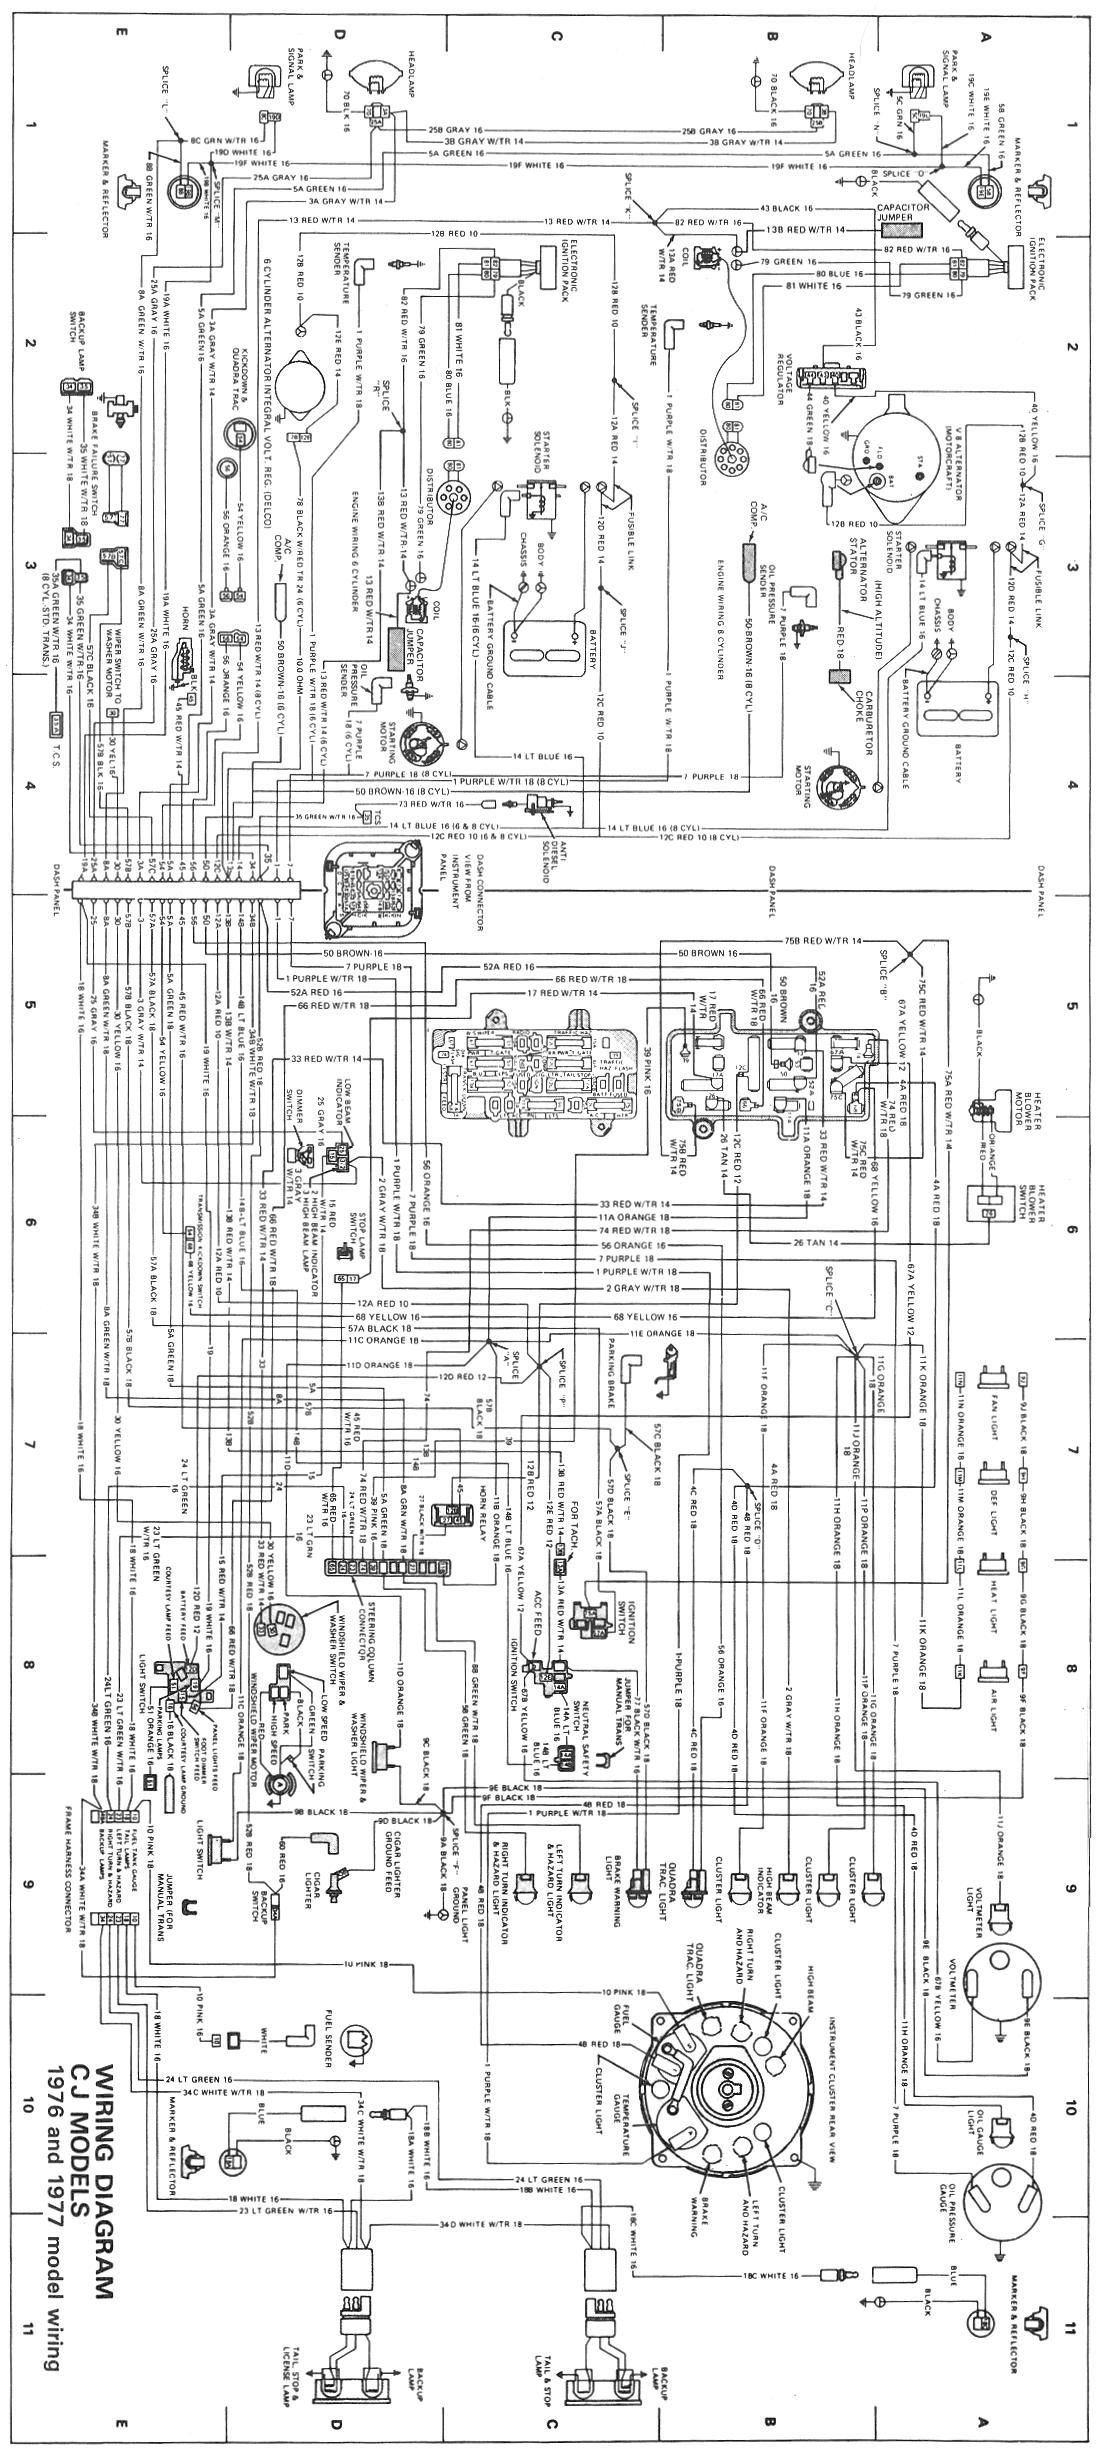 8d25ded6e3673519e155875e09844e5e cj wiring diagram 1976 1977 jpg 1,100�2,459 pixels 1976 jeep cj5 CJ5 Wiring Harness Replacement at arjmand.co